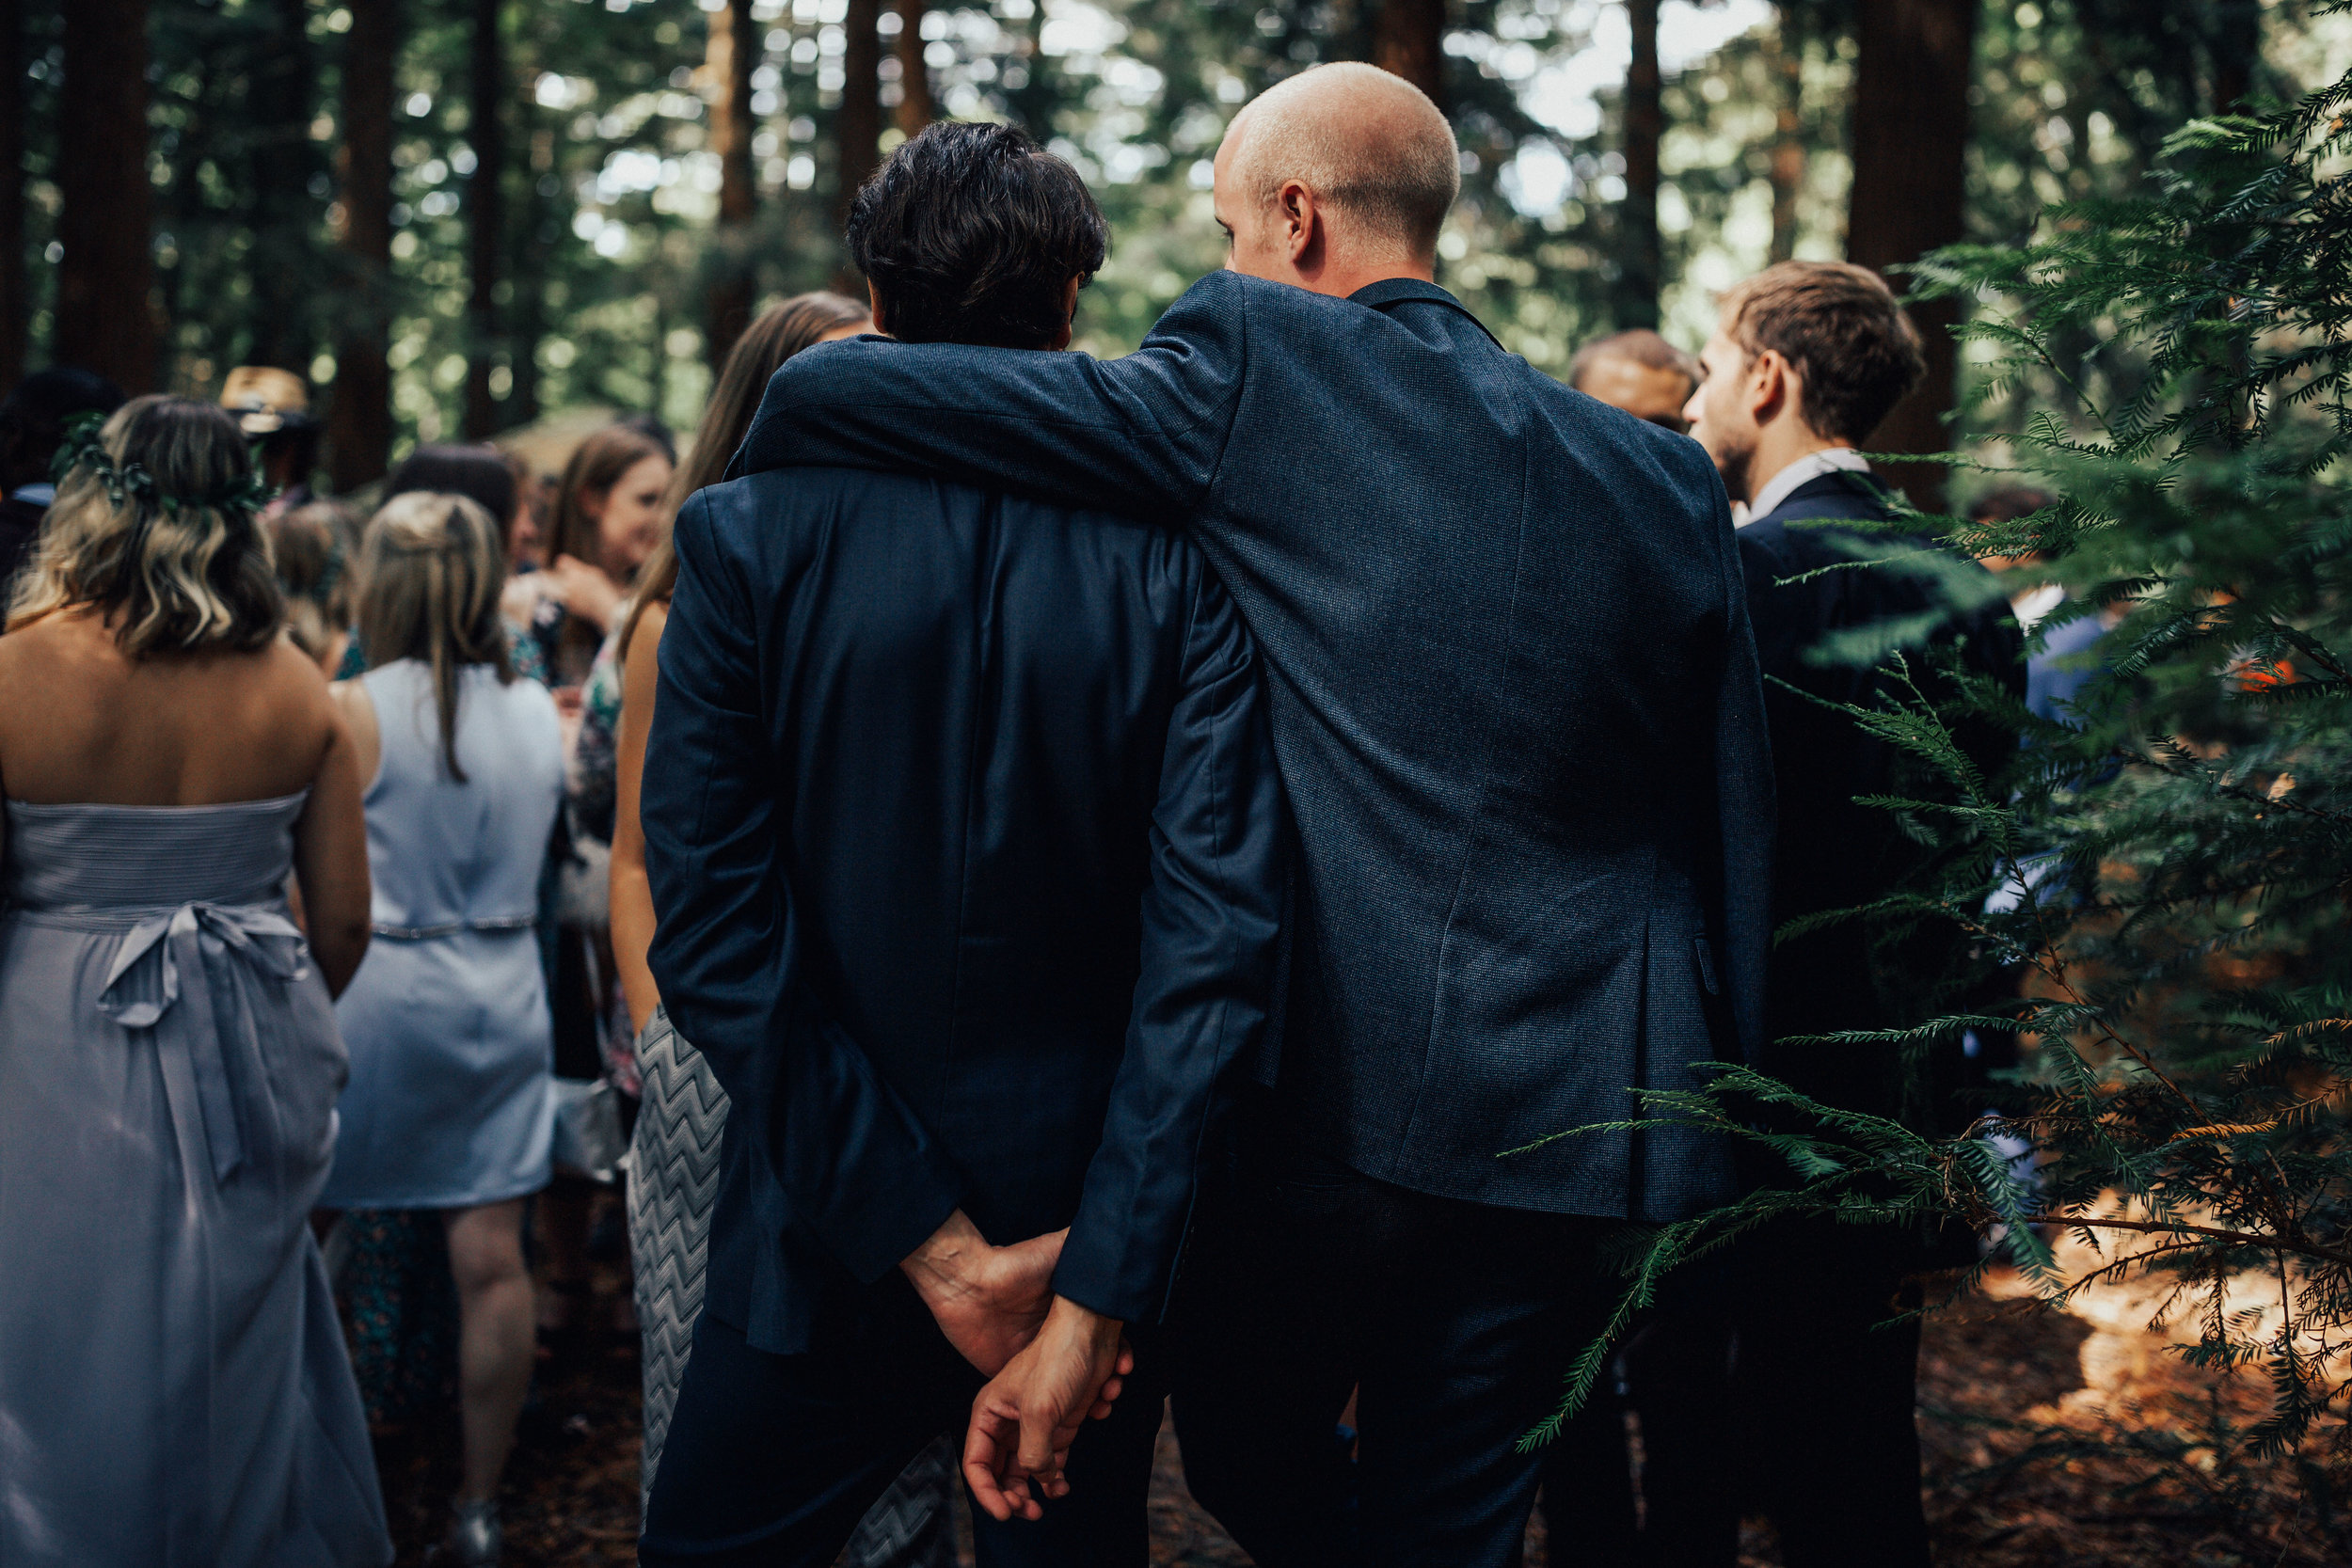 TWO_WOODS_ESTATE_WEDDING_PULBOROUGH_PJ_PHILLIPS_PHOTOGRAPHY_FRAN_&_GEORGE_126.jpg